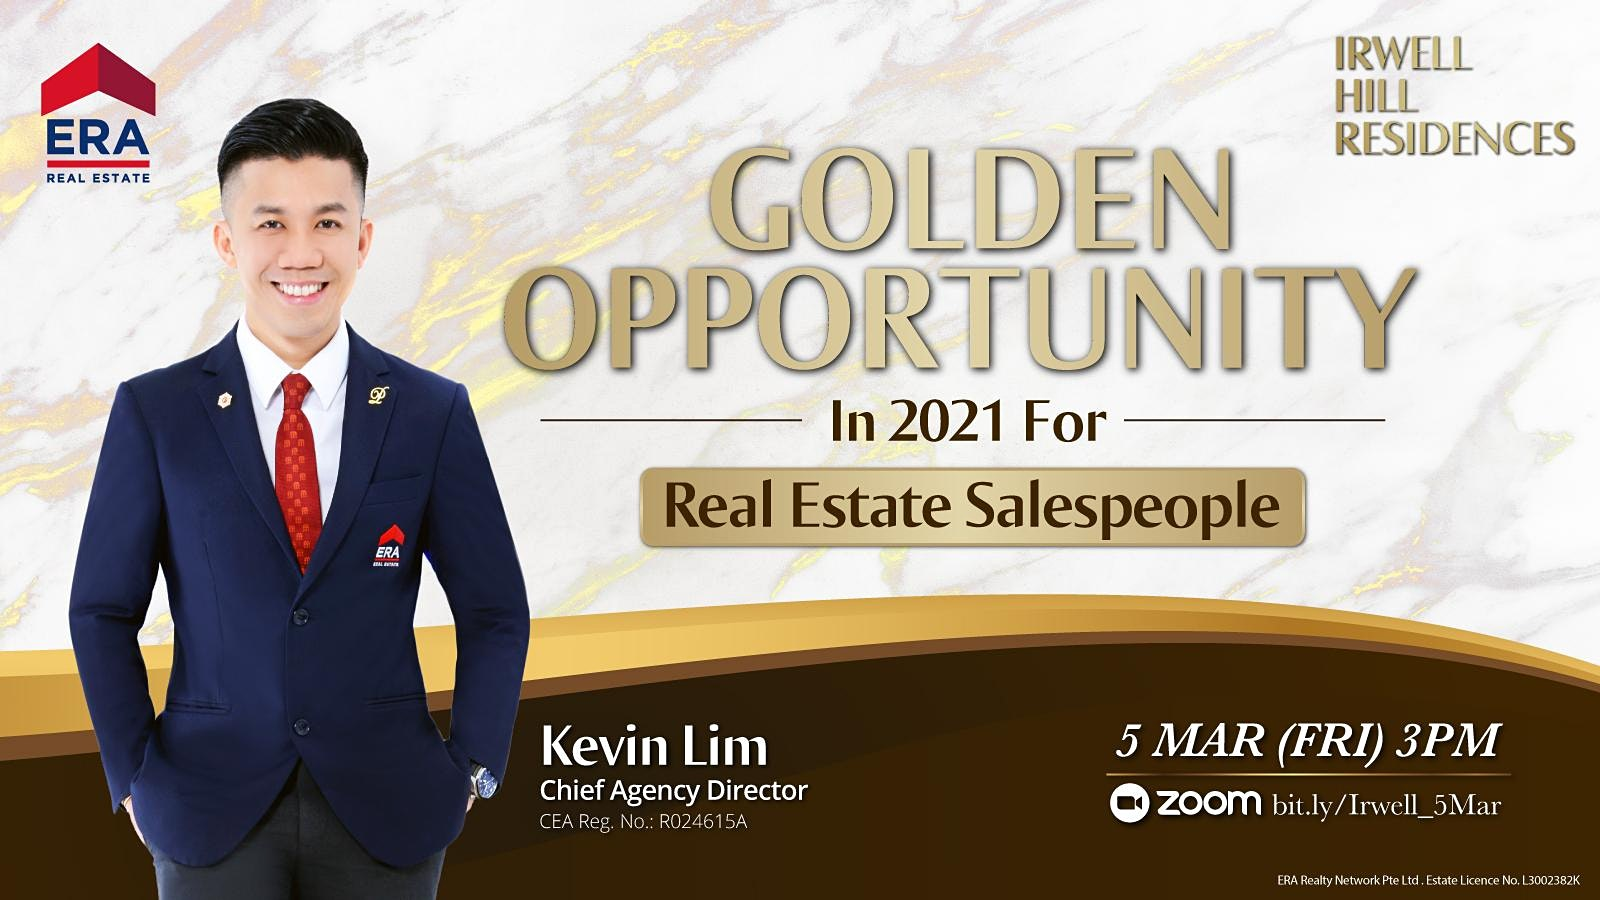 Golden Opportunity In 2021 For Real Estate Salespeople (Irwell Hill)